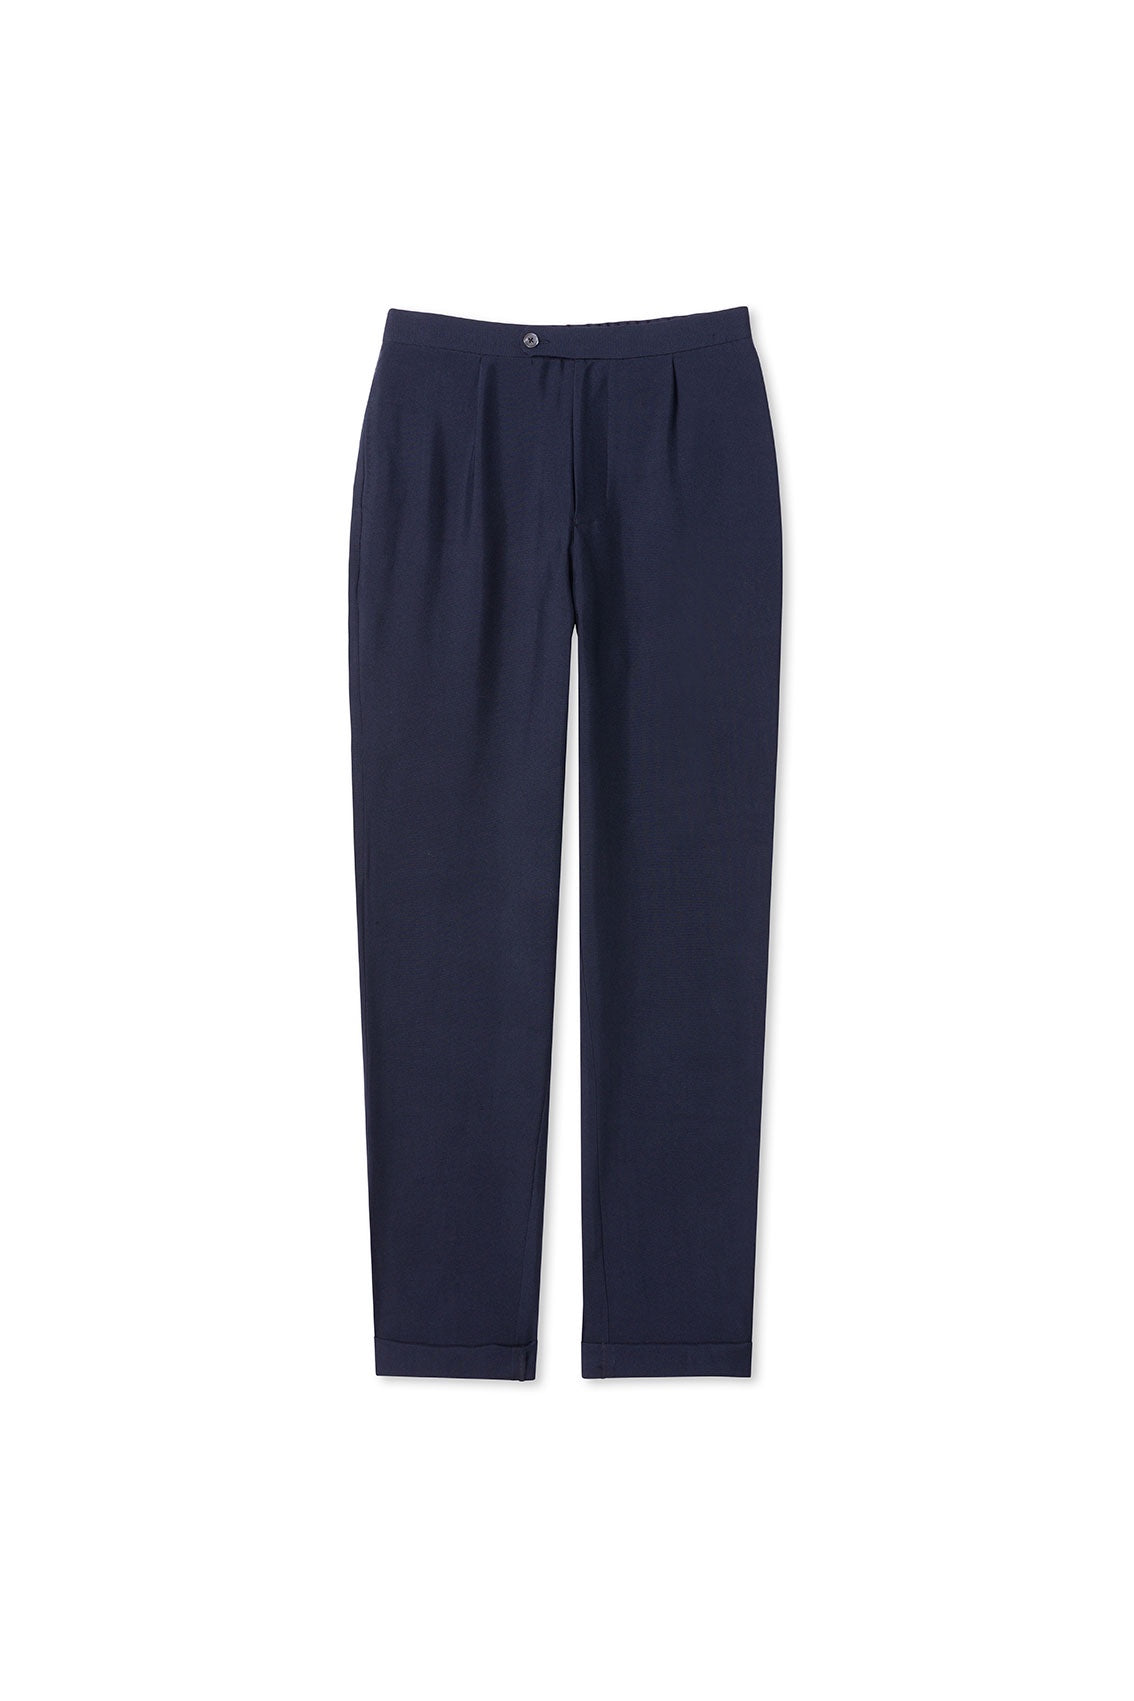 Navy Silk Drawstring Trousers